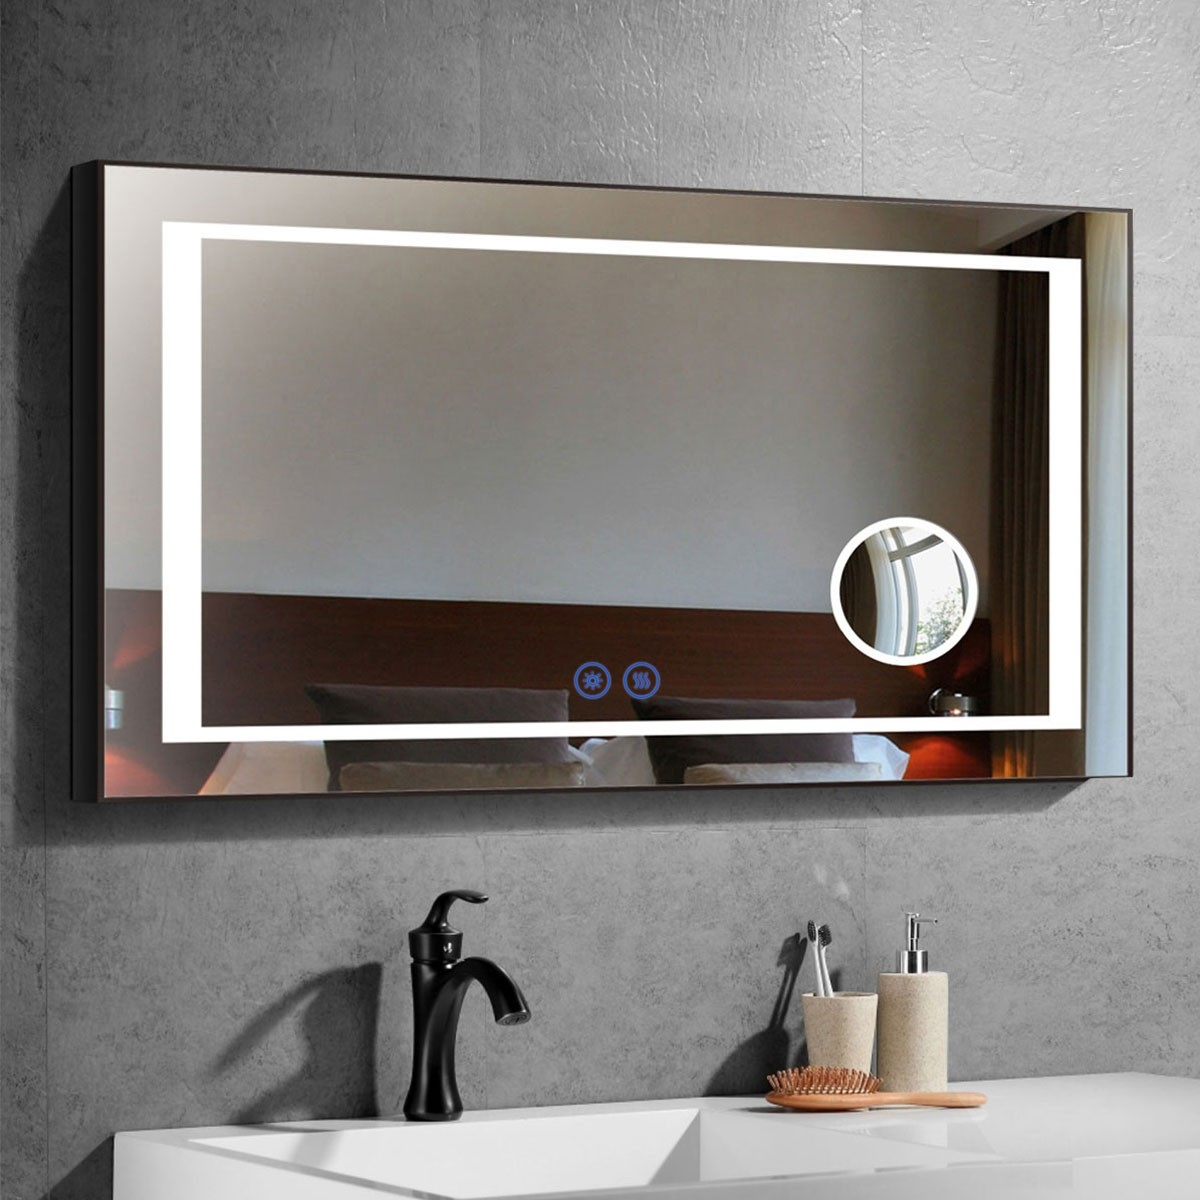 DECORAPORT 48 x 28 Inch LED Bathroom Mirror/Dress Mirror with Touch Button, Magnifier, Anti Fog, Dimmable, Horizontal Mount (KT08-4828)